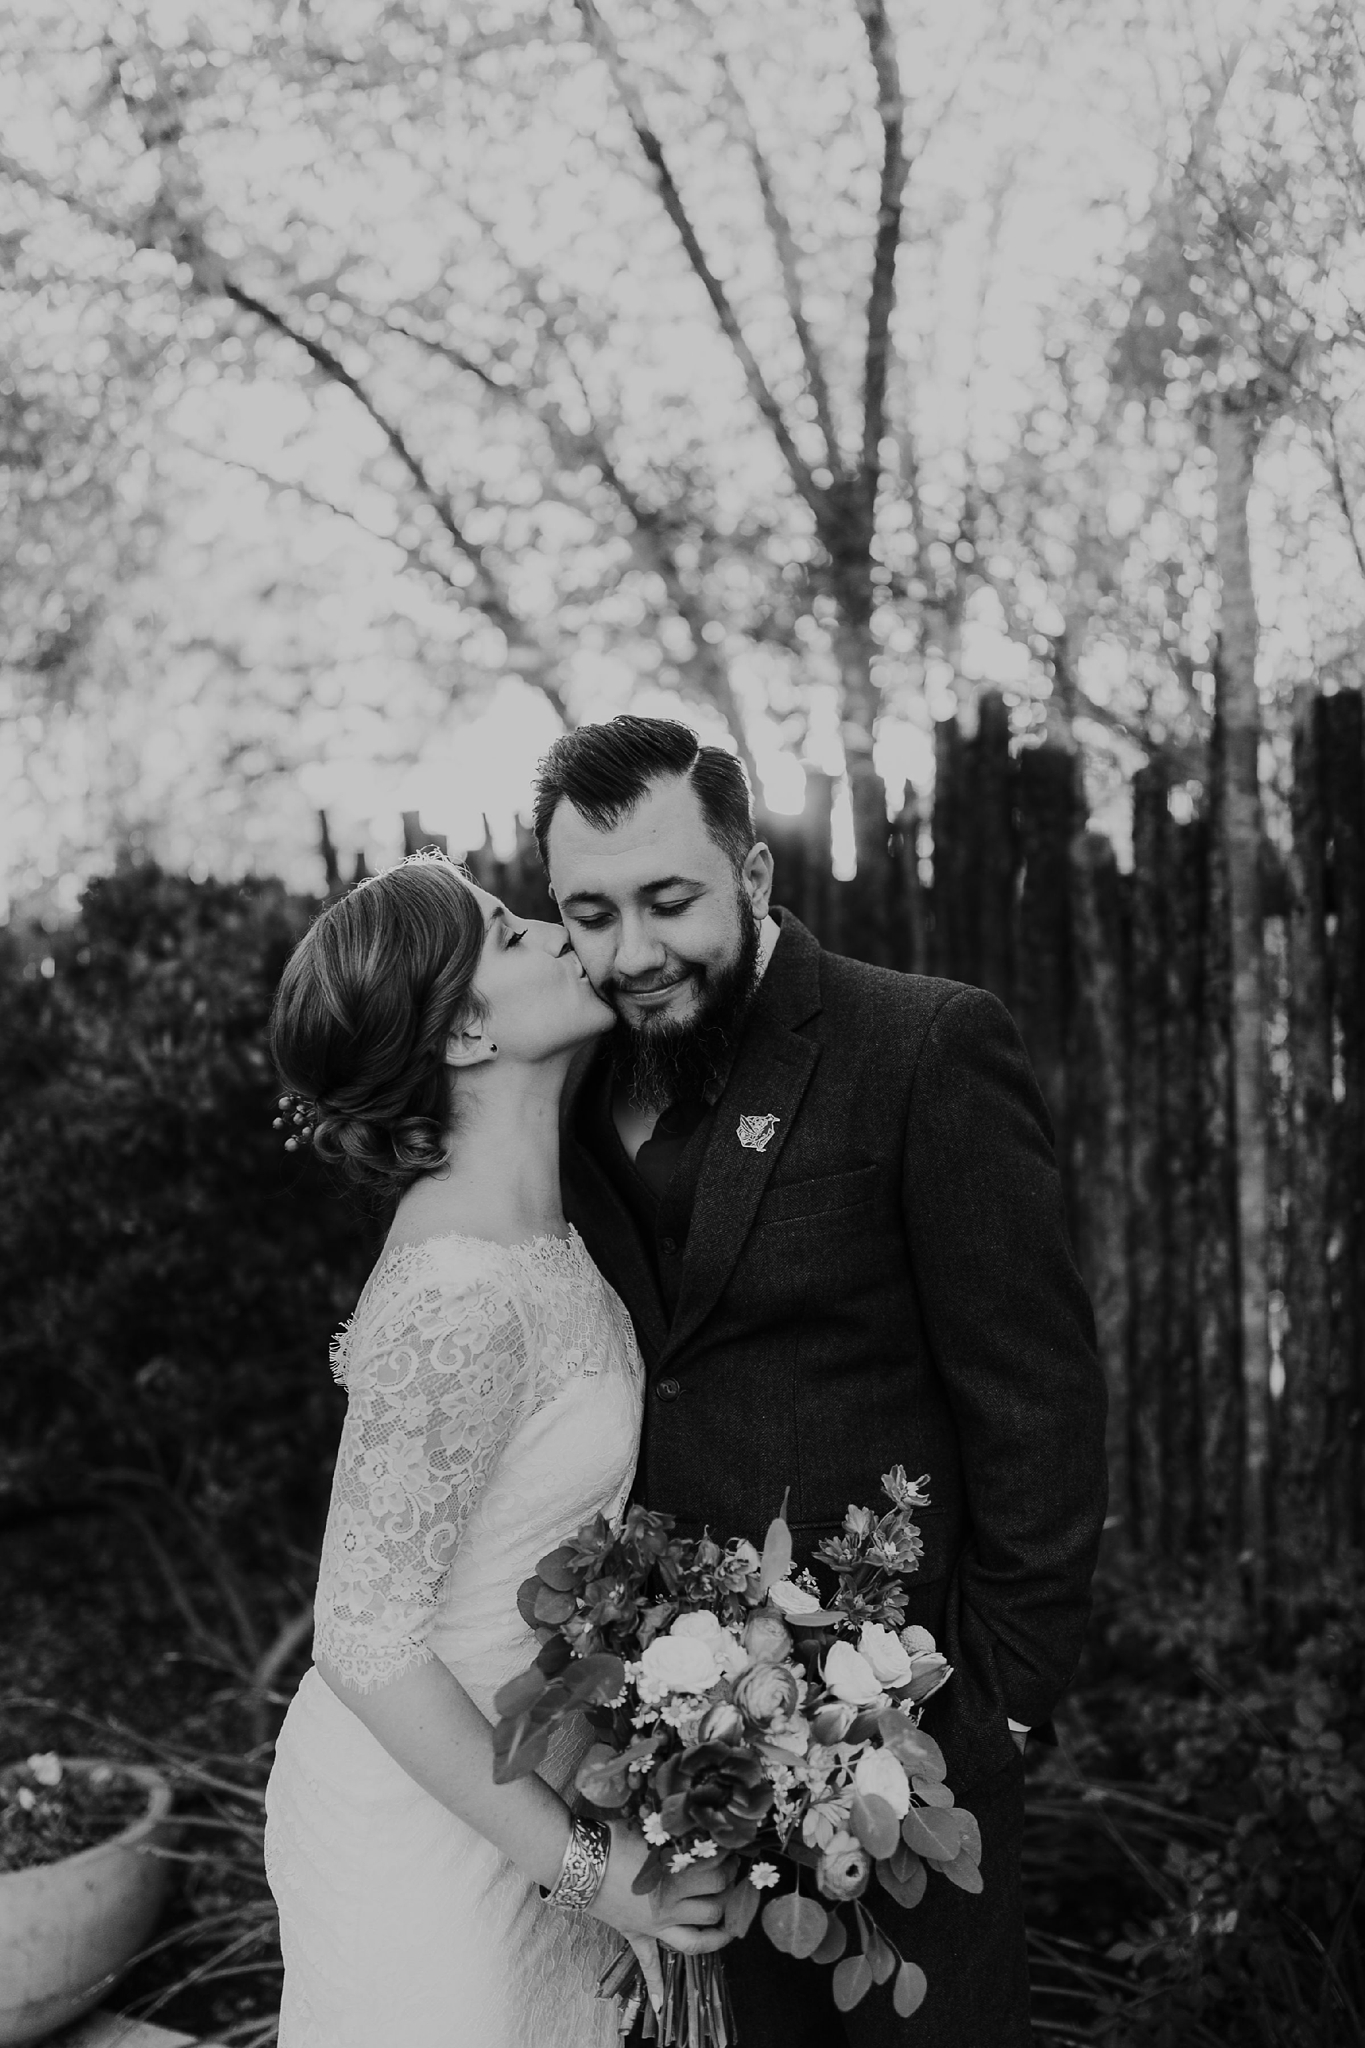 Alicia+lucia+photography+-+albuquerque+wedding+photographer+-+santa+fe+wedding+photography+-+new+mexico+wedding+photographer+-+albuquerque+wedding+-+sarabande+bed+breakfast+-+bed+and+breakfast+wedding_0089.jpg